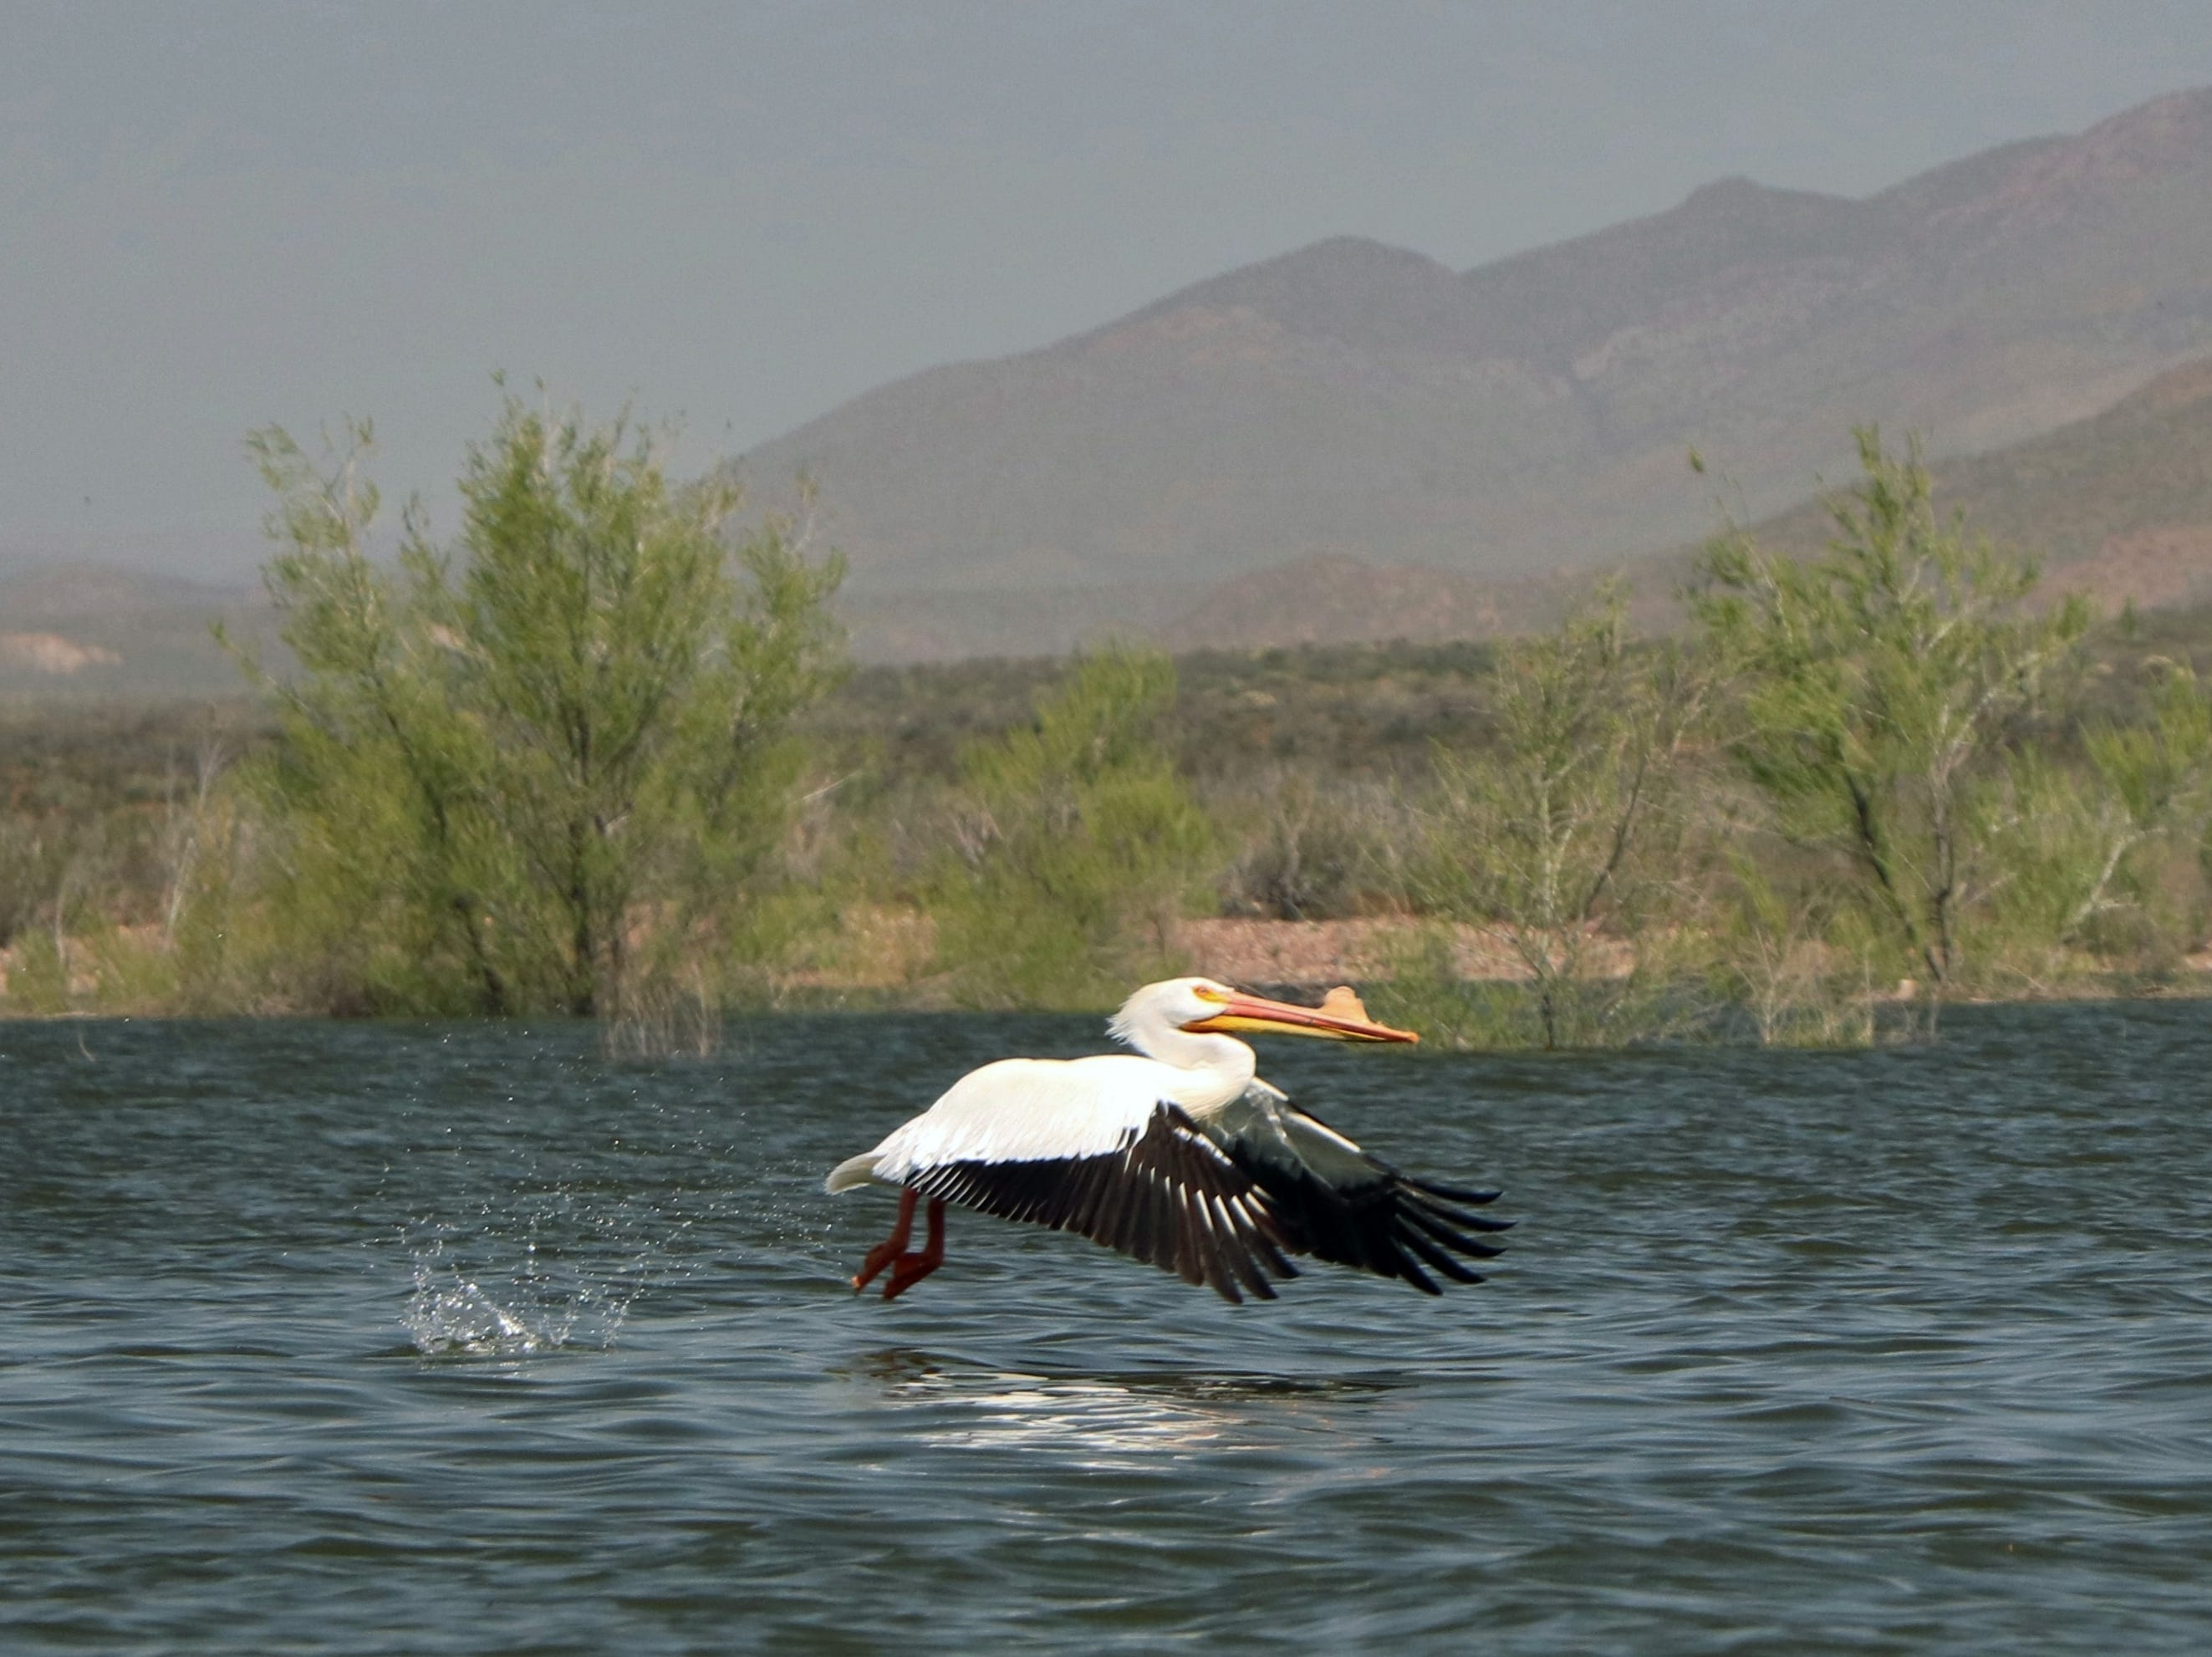 An American white pelican enjoying the warmth of an Arizona spring day at the lake.